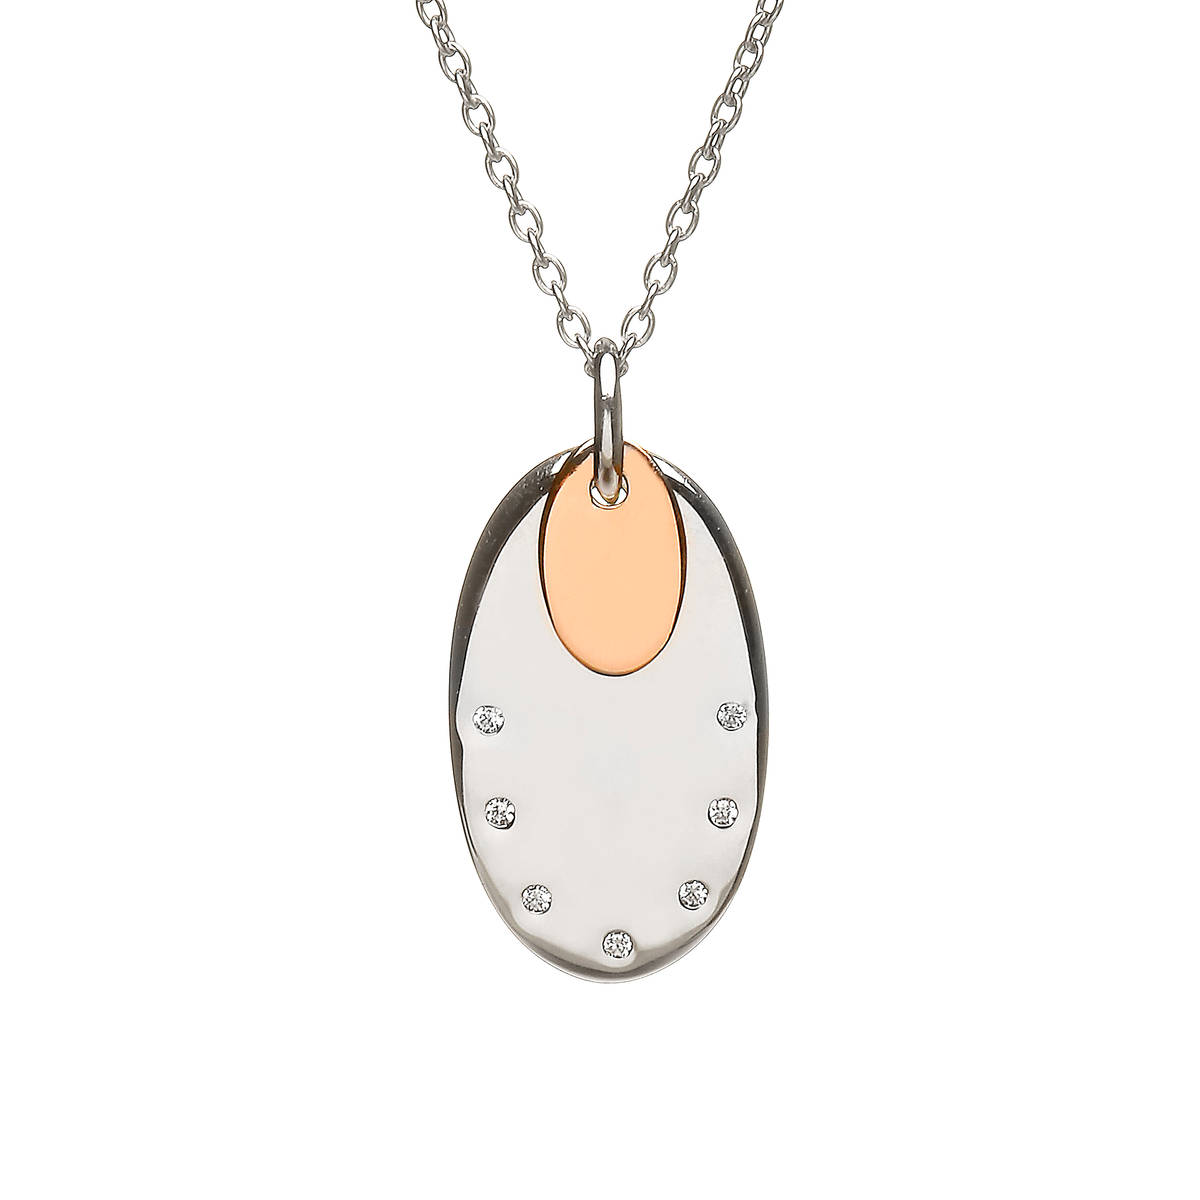 House of Lor silver oval cz disc with oval rose gold disc made from rare Irish goldaick/dipck